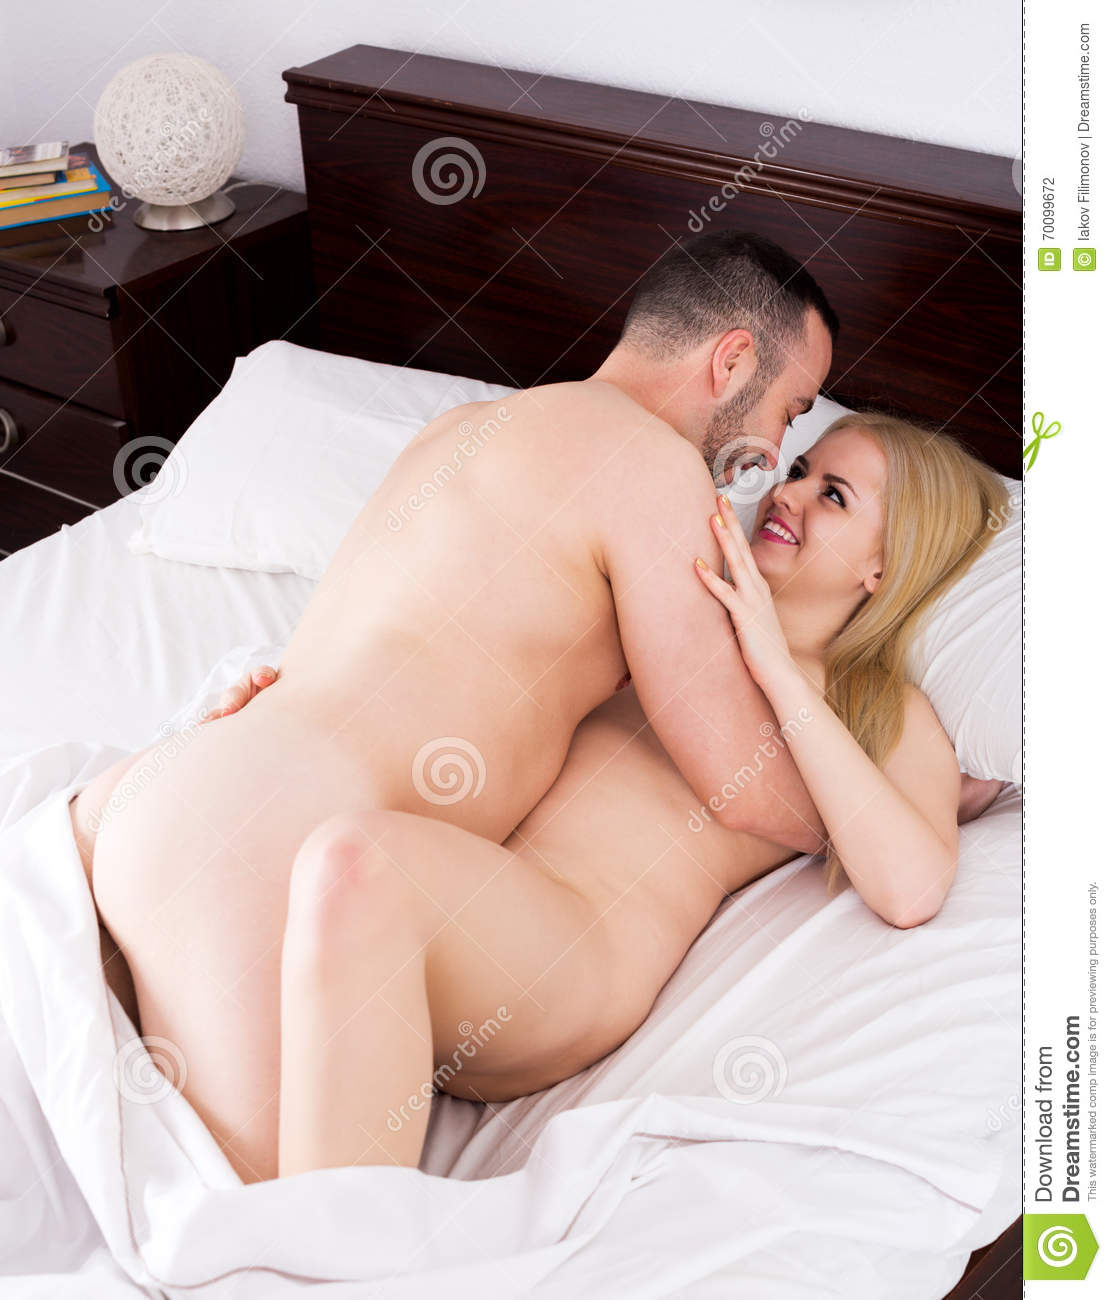 girl and handsome boyfriend having sex stock photo - image of